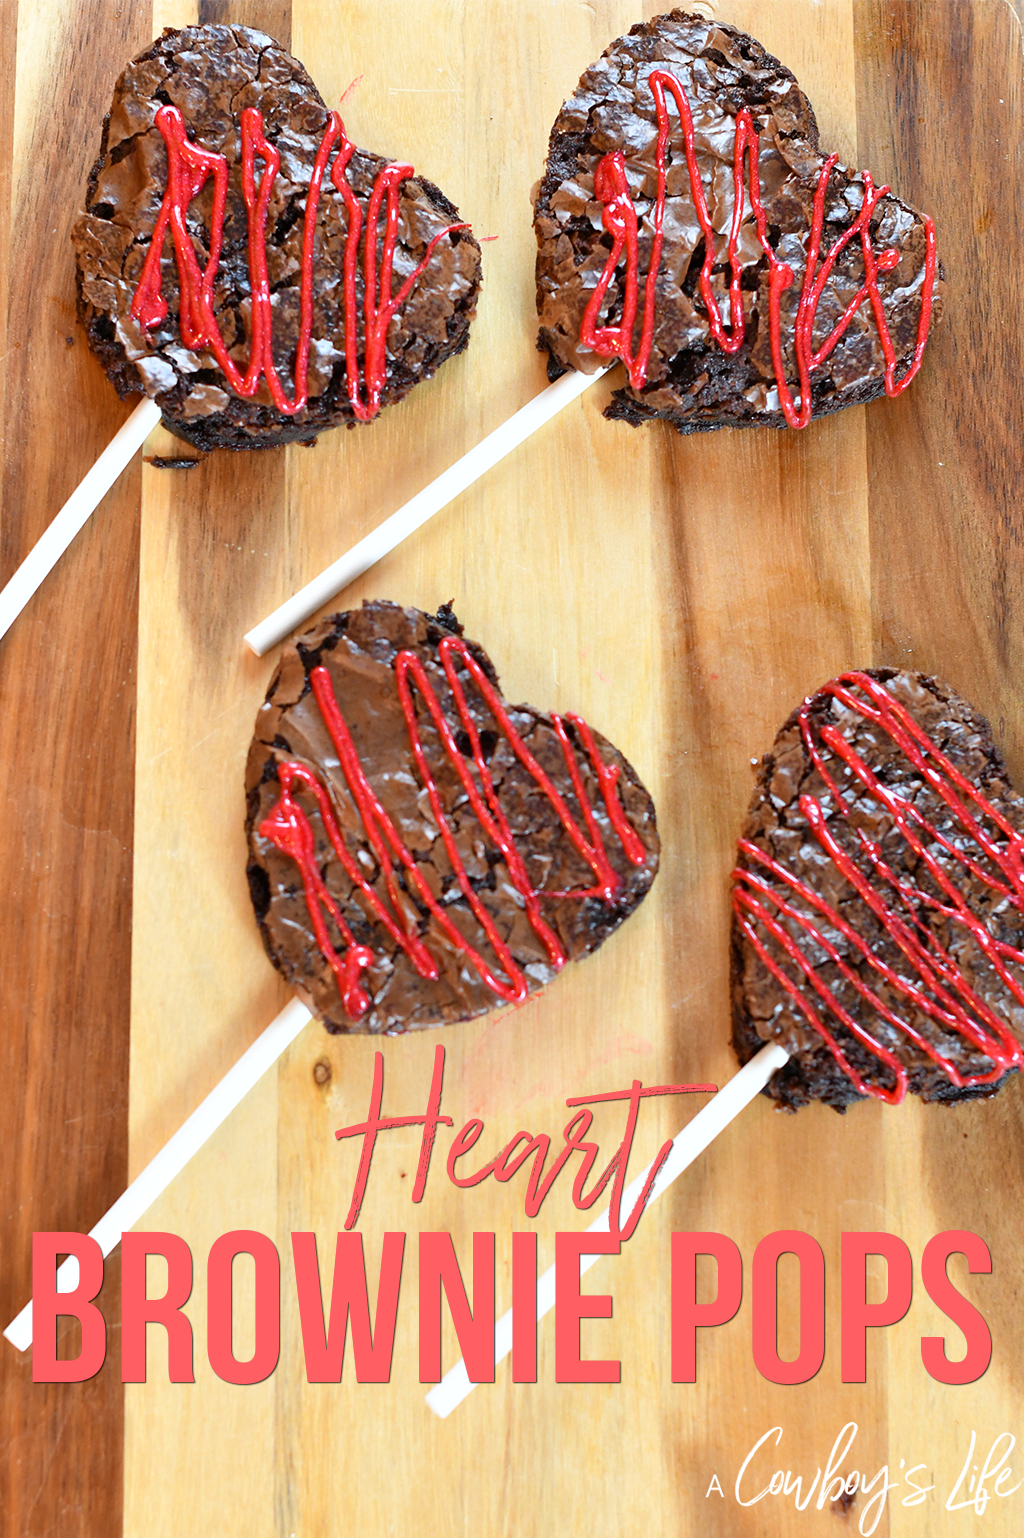 How to make heart brownie pops #heartbrownies  #dessert #brownies